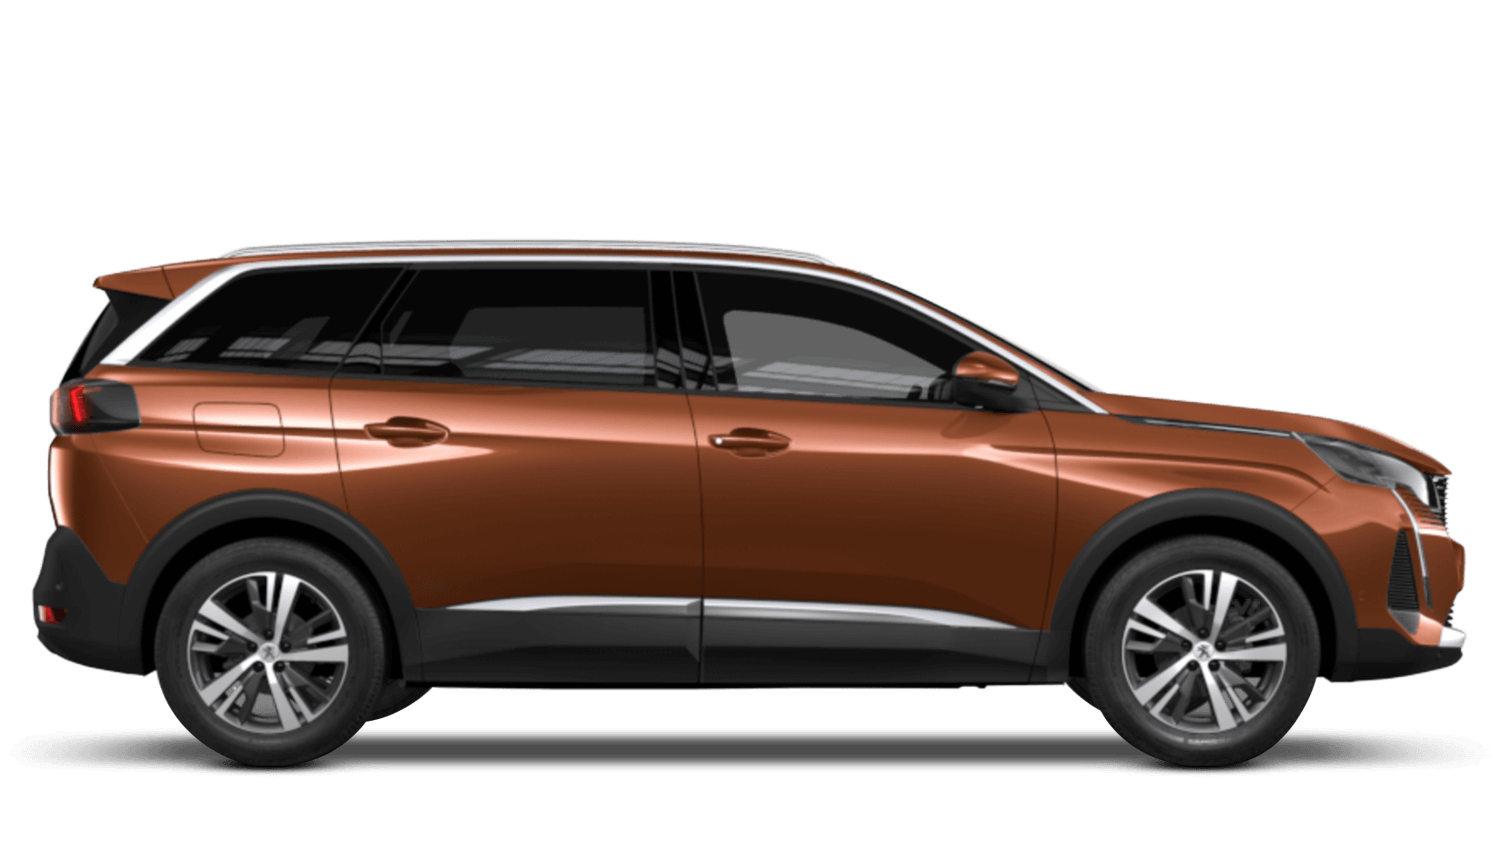 Sunset Copper New Peugeot 5008 SUV